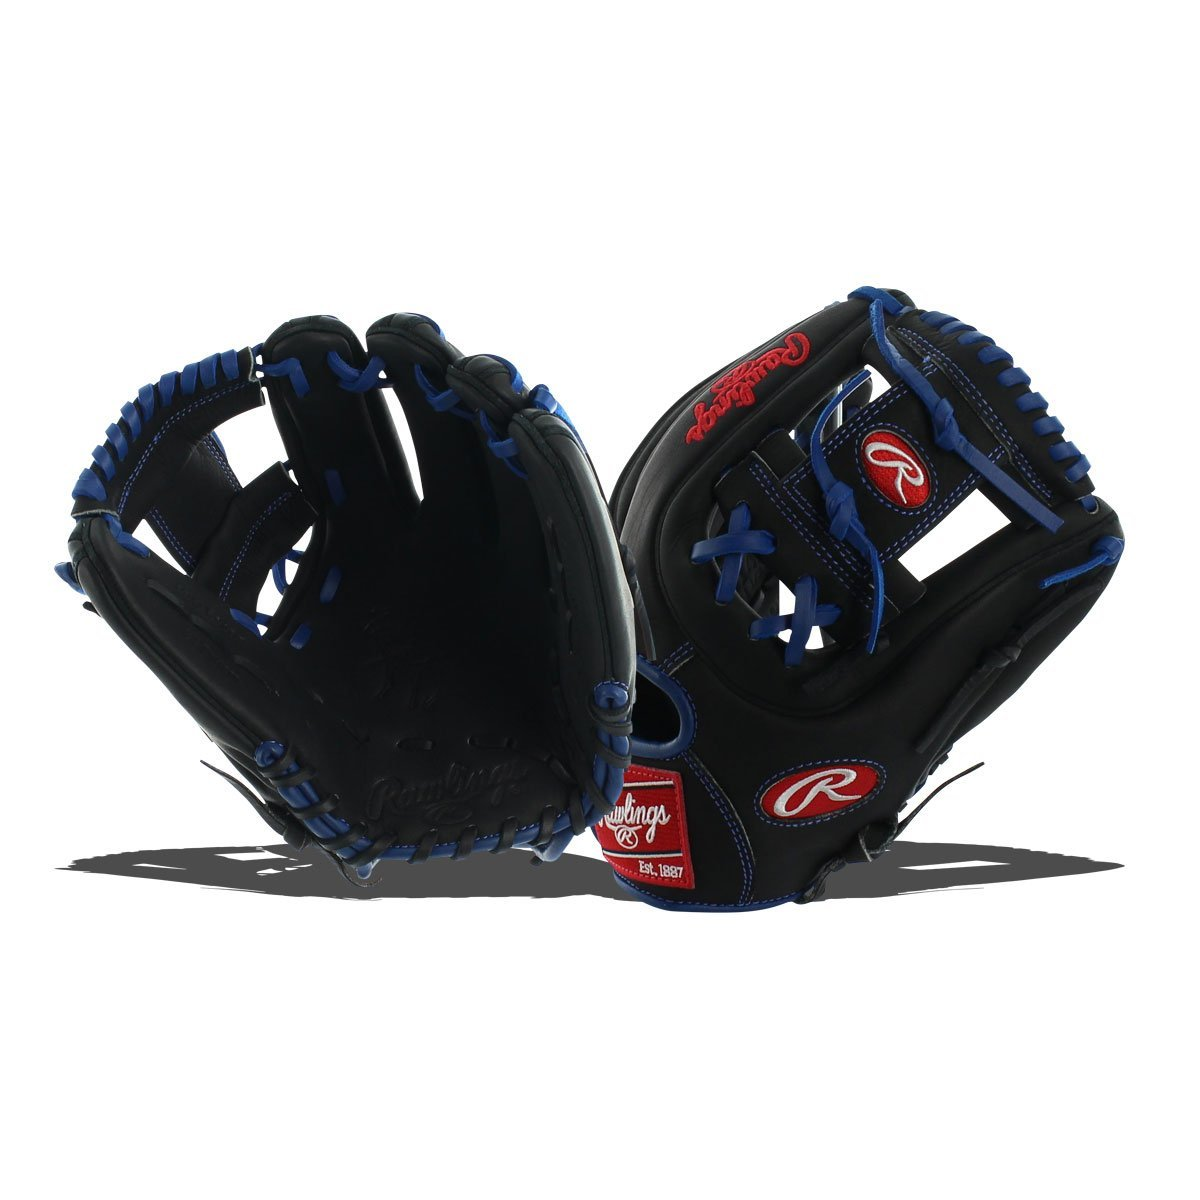 rawlings-pro314dc-2br-hoh-dual-core-baseball-glove-black-11-right-hand-throw PRO314DC-2BR-RightHandThrow Rawlings 083321179204 Heart of the Hide174 Dual Core fielders gloves are designed with